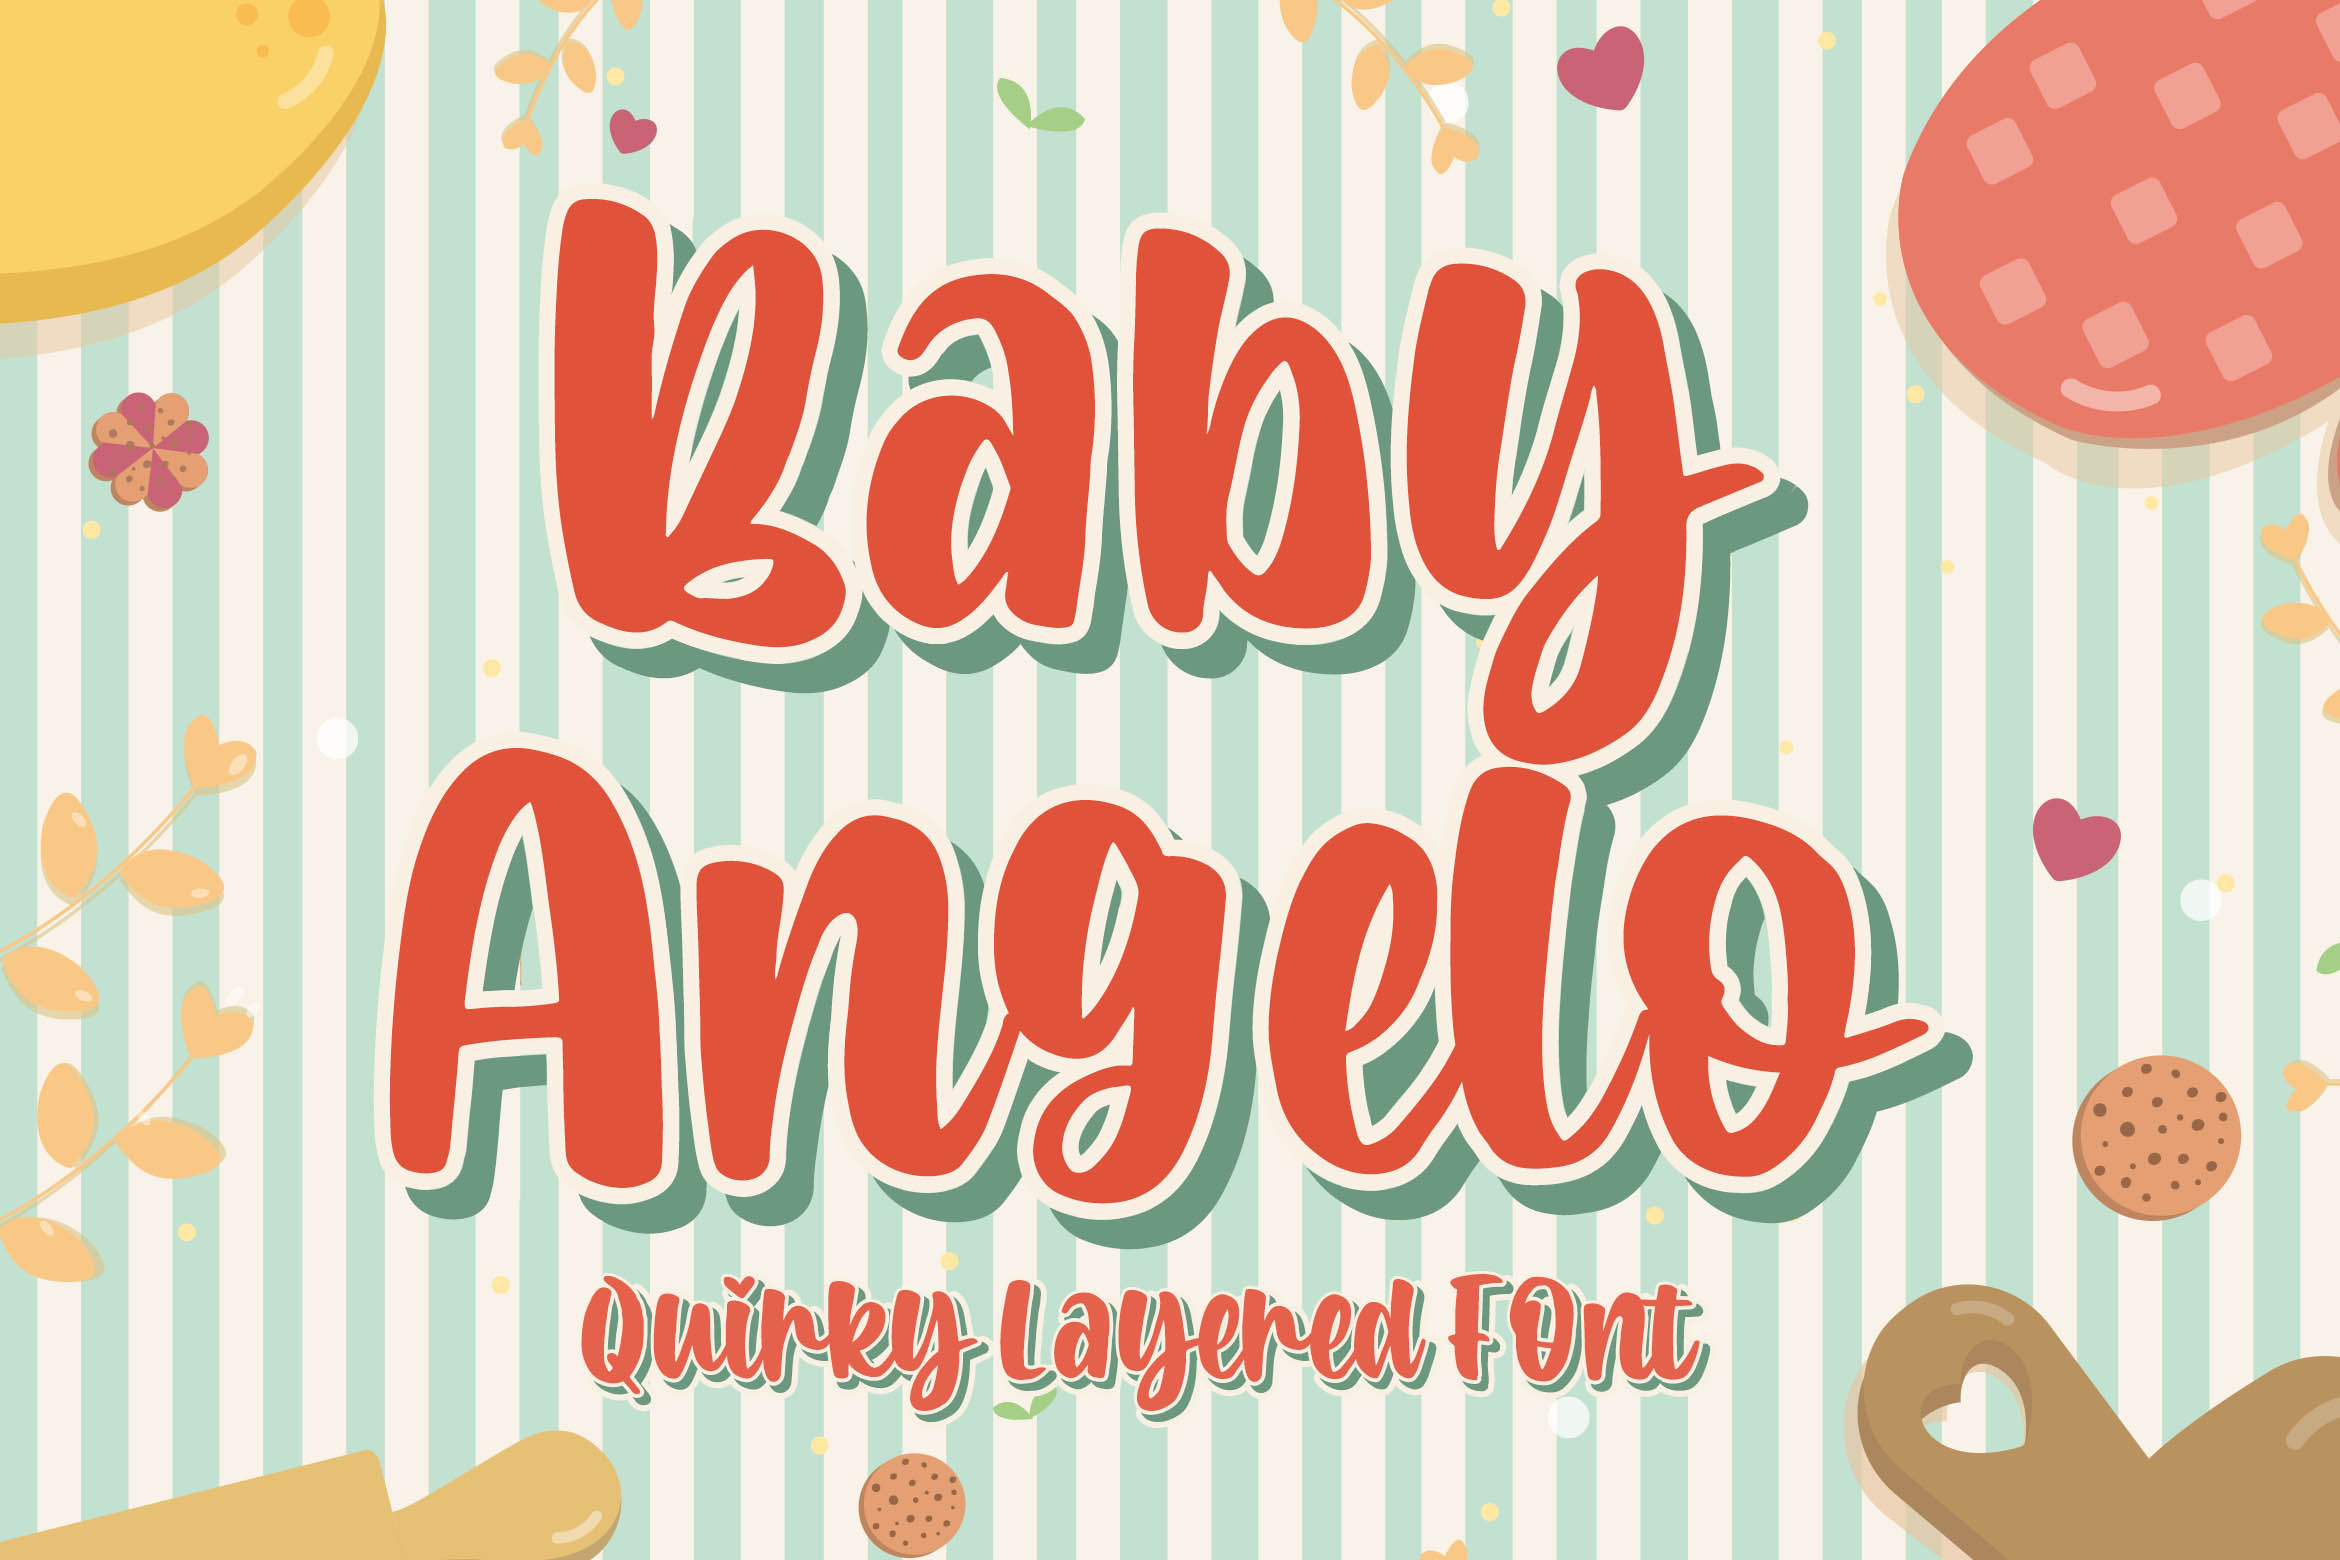 Baby Angelo - Quirky Layered Font example image 1